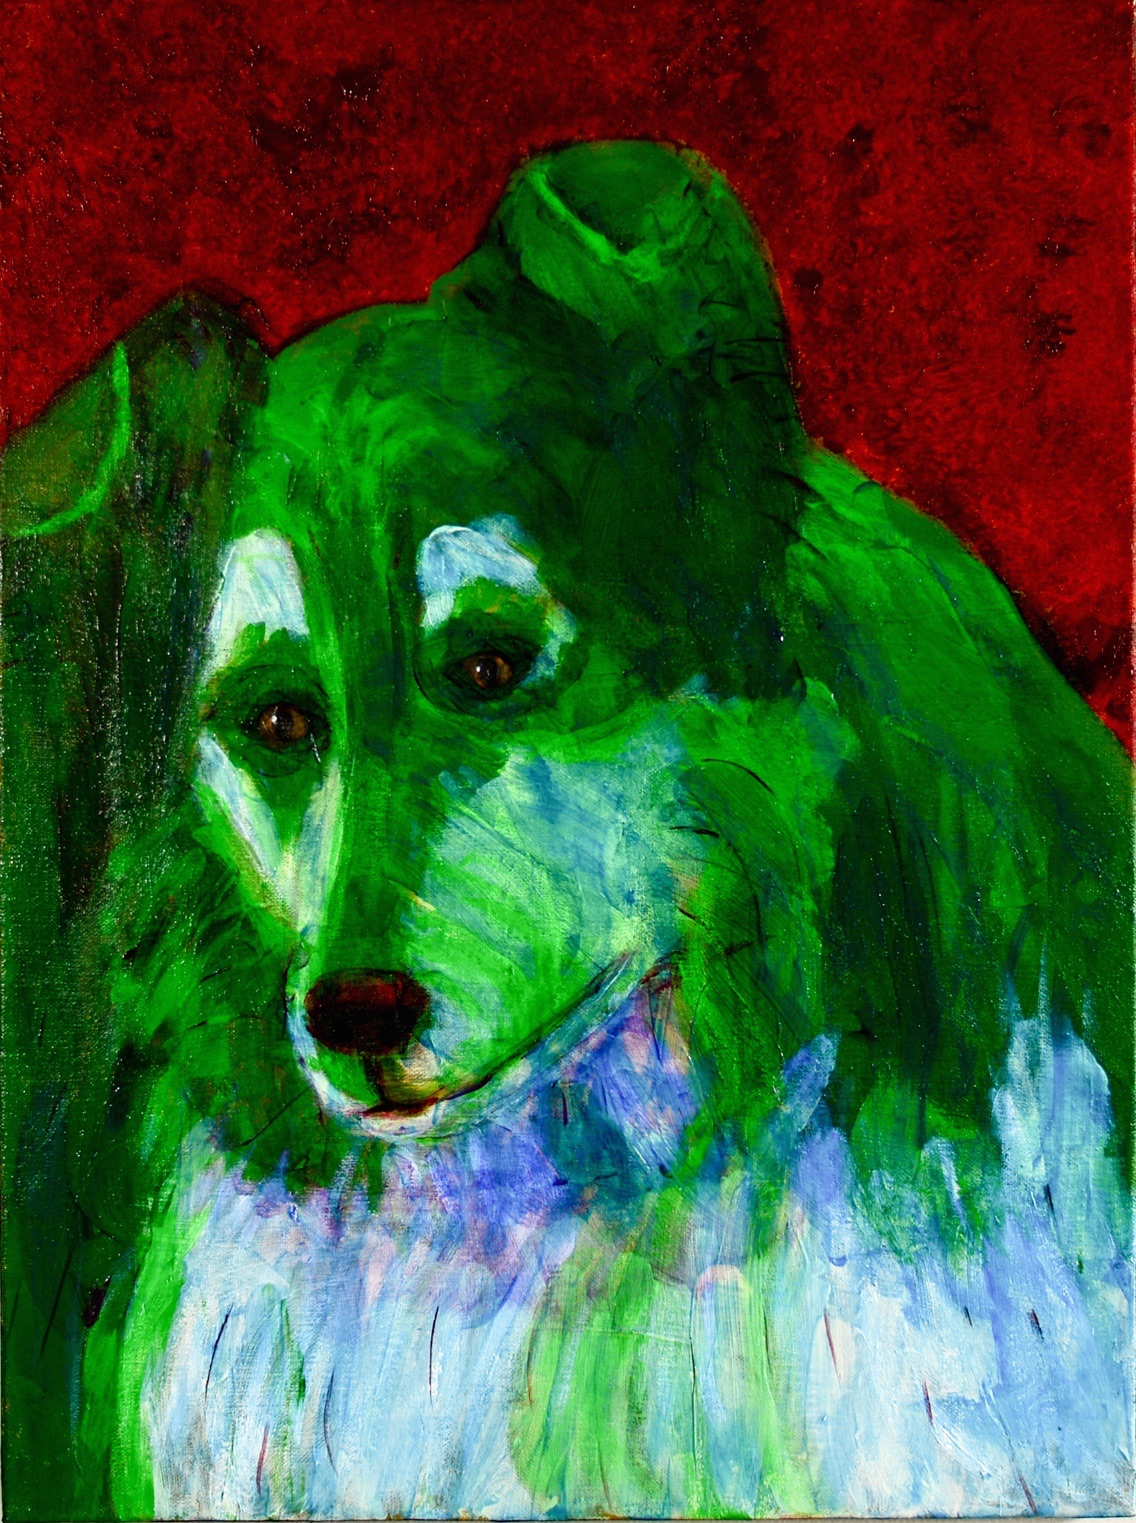 Green Collie - Original for Sale - Prints Available